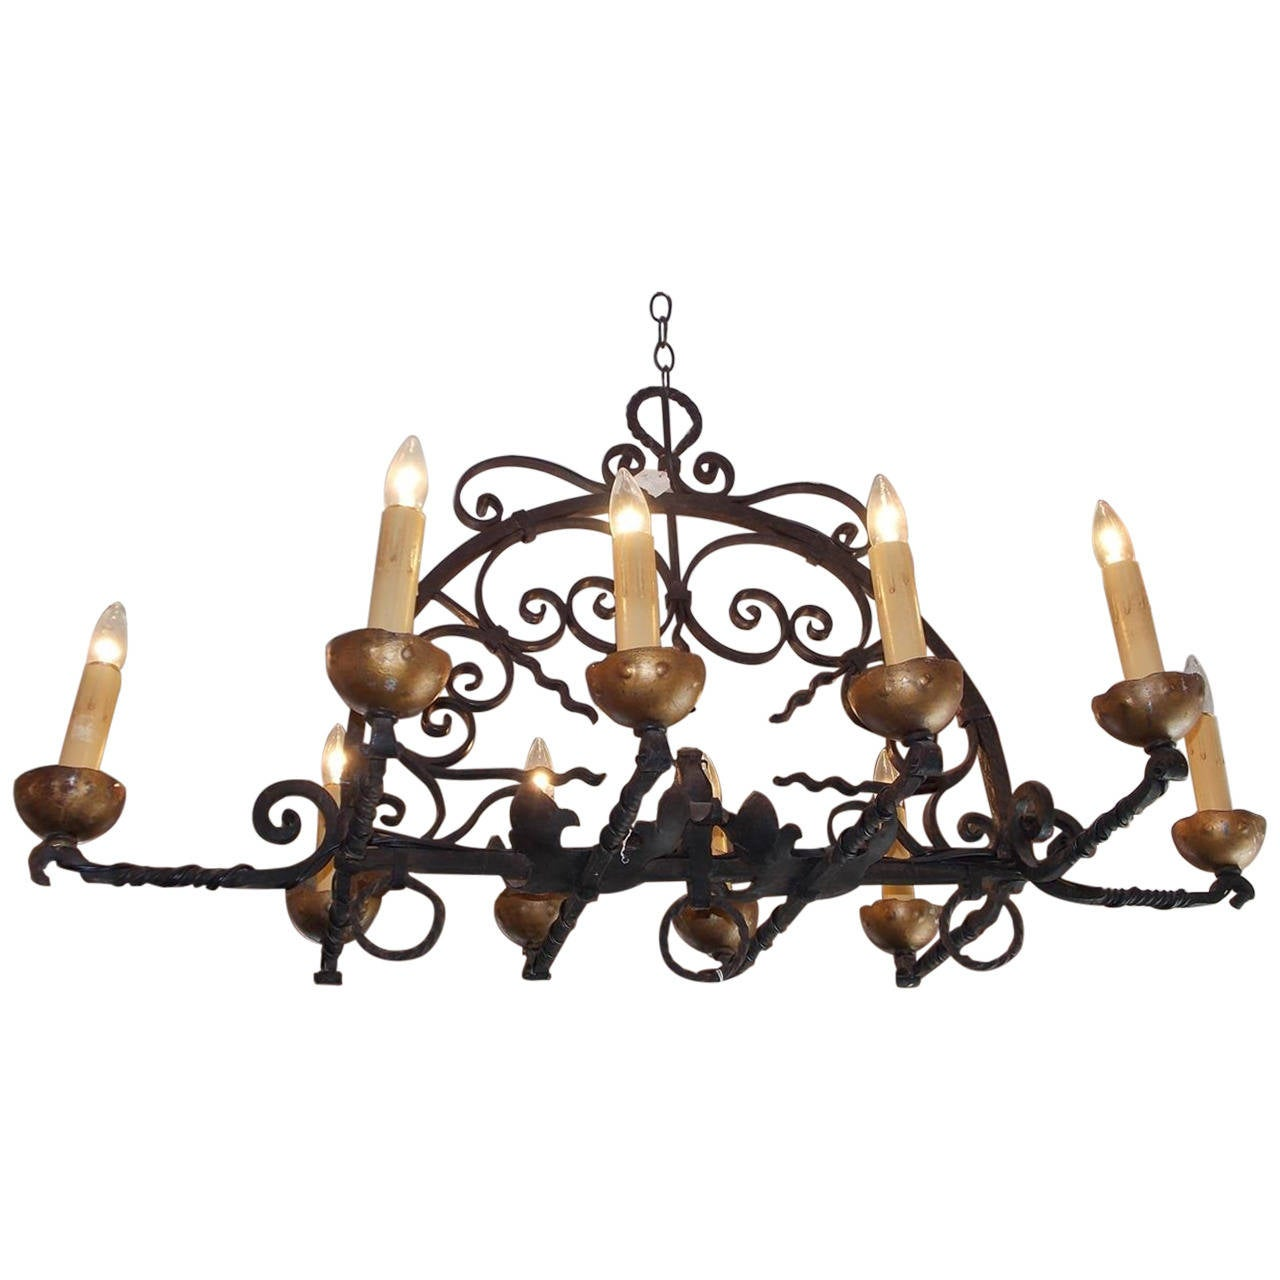 French wrought iron and gilt elongated chandelier circa 1850 for french wrought iron and gilt elongated chandelier circa 1850 for sale aloadofball Images